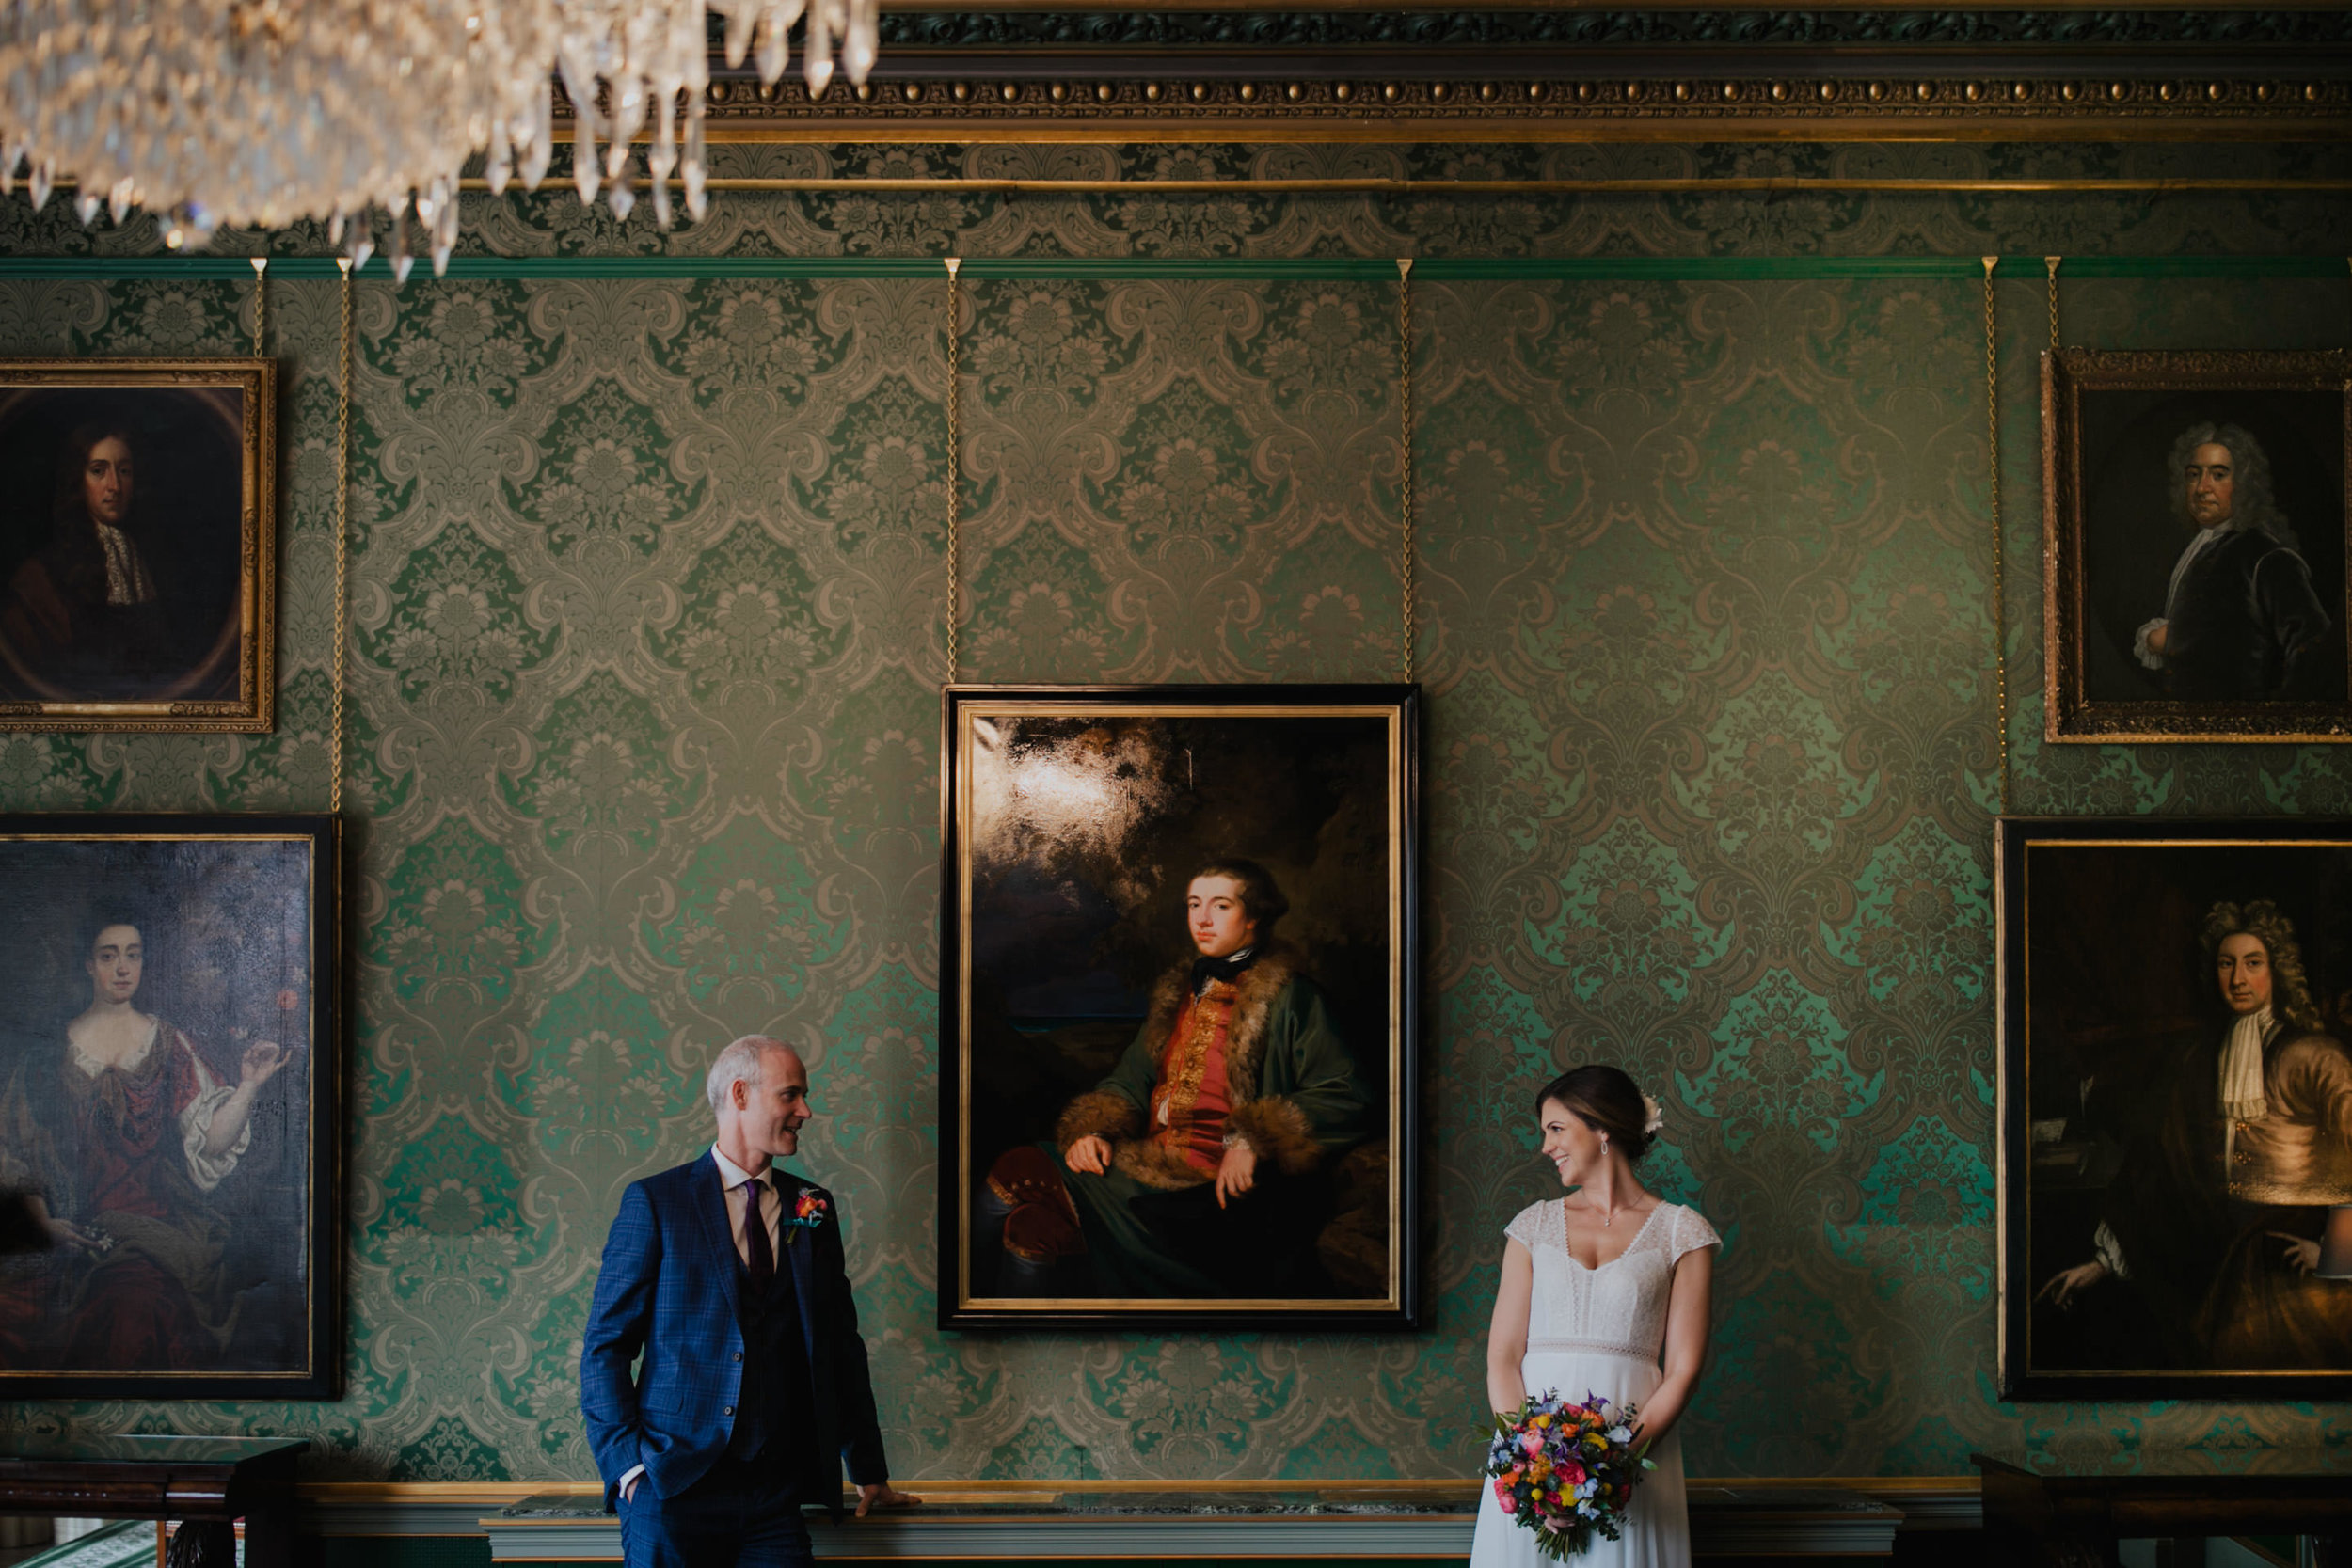 s&r_the_shelbourne_hotel_wedding_photographer_livia_figueiredo_14.jpg